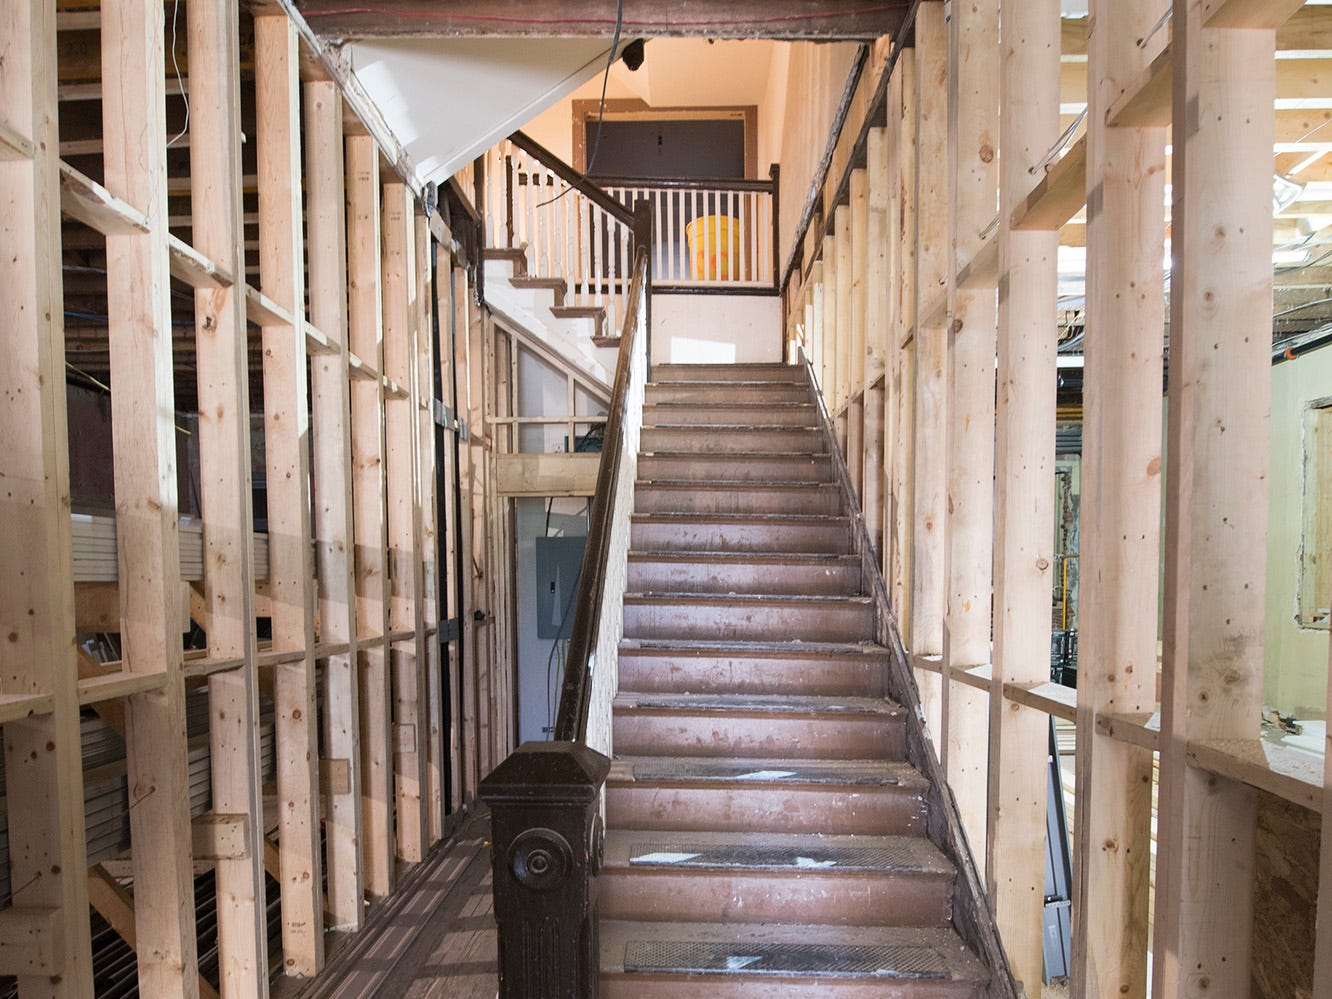 The first floor staircase to the second floor at the Doll Building at 337 W. Market Street in York.